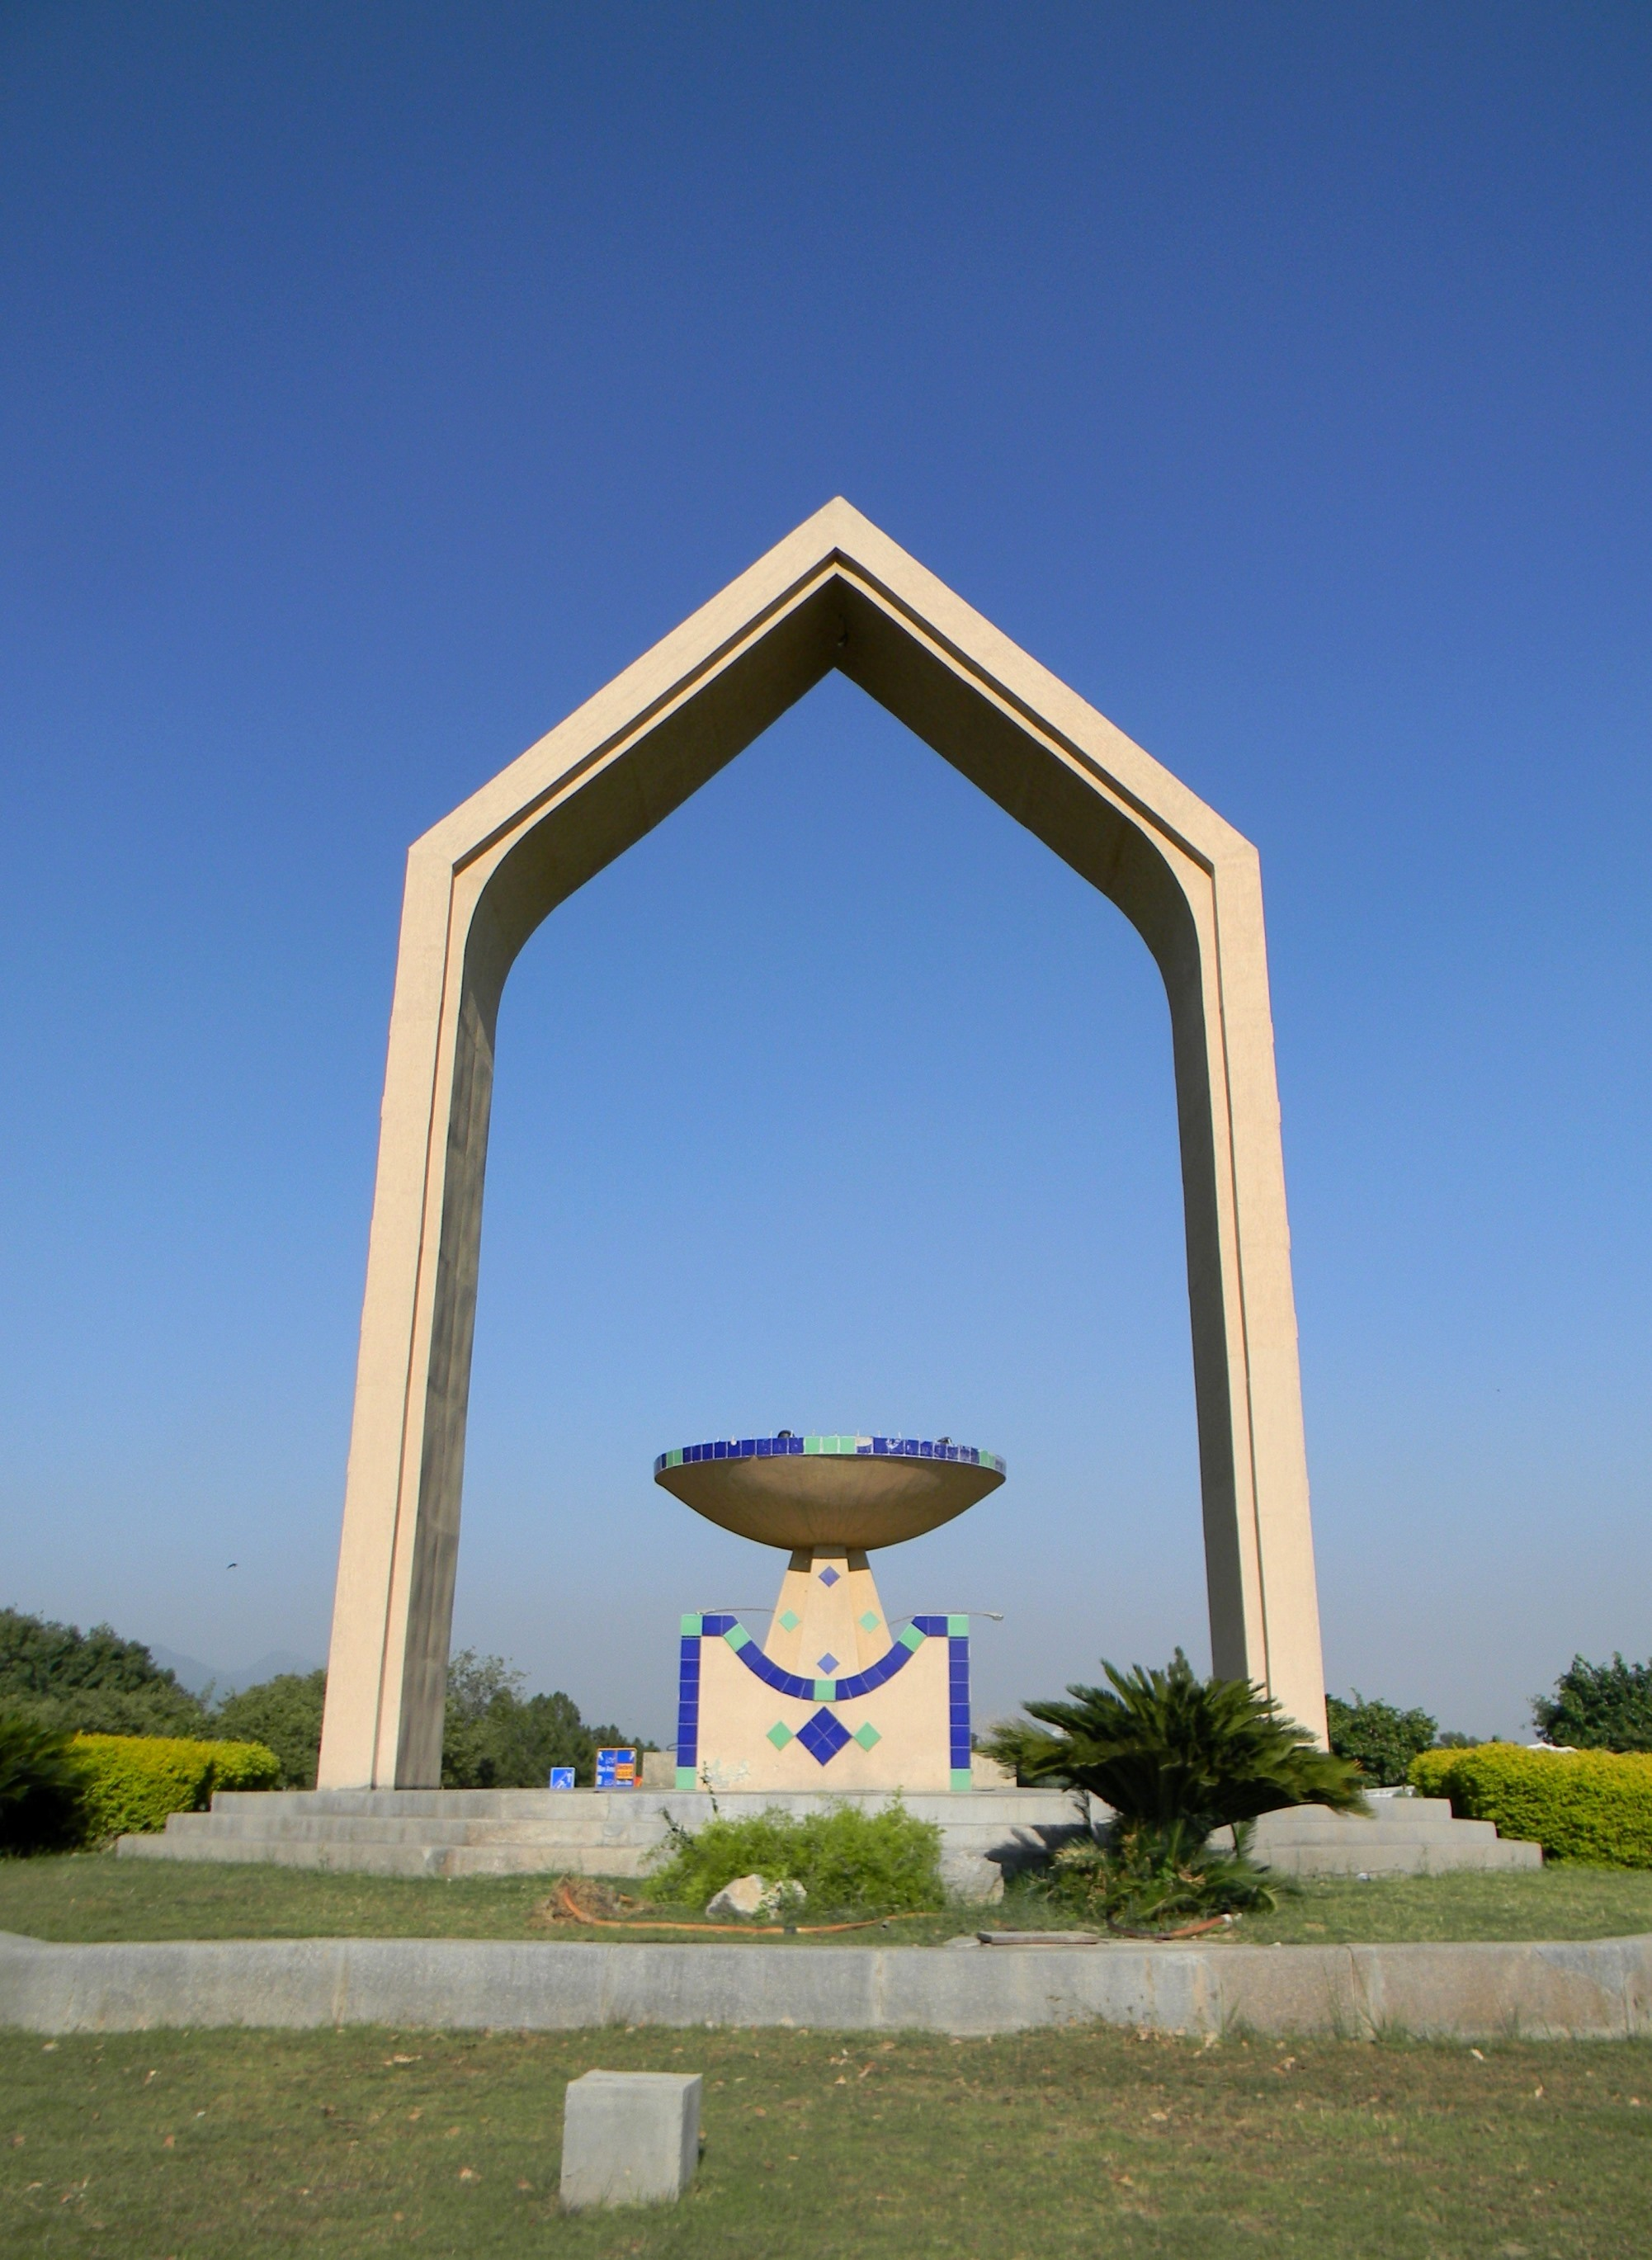 Monument at Fatima Jinnah Park in Islamabad